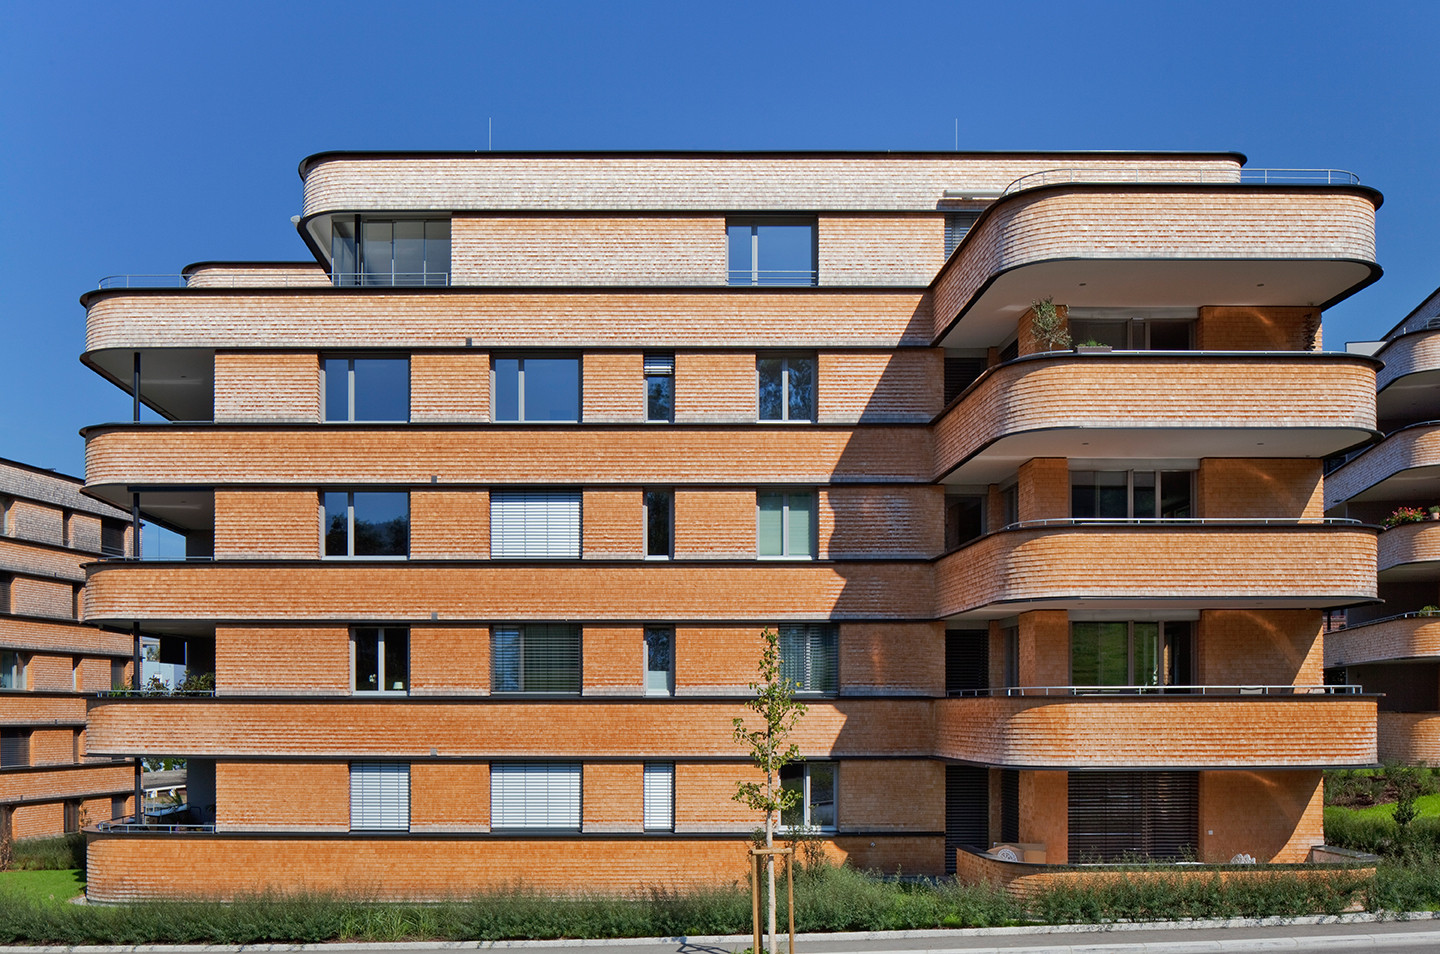 Gallery Of Siedlung Residential Buildings Be